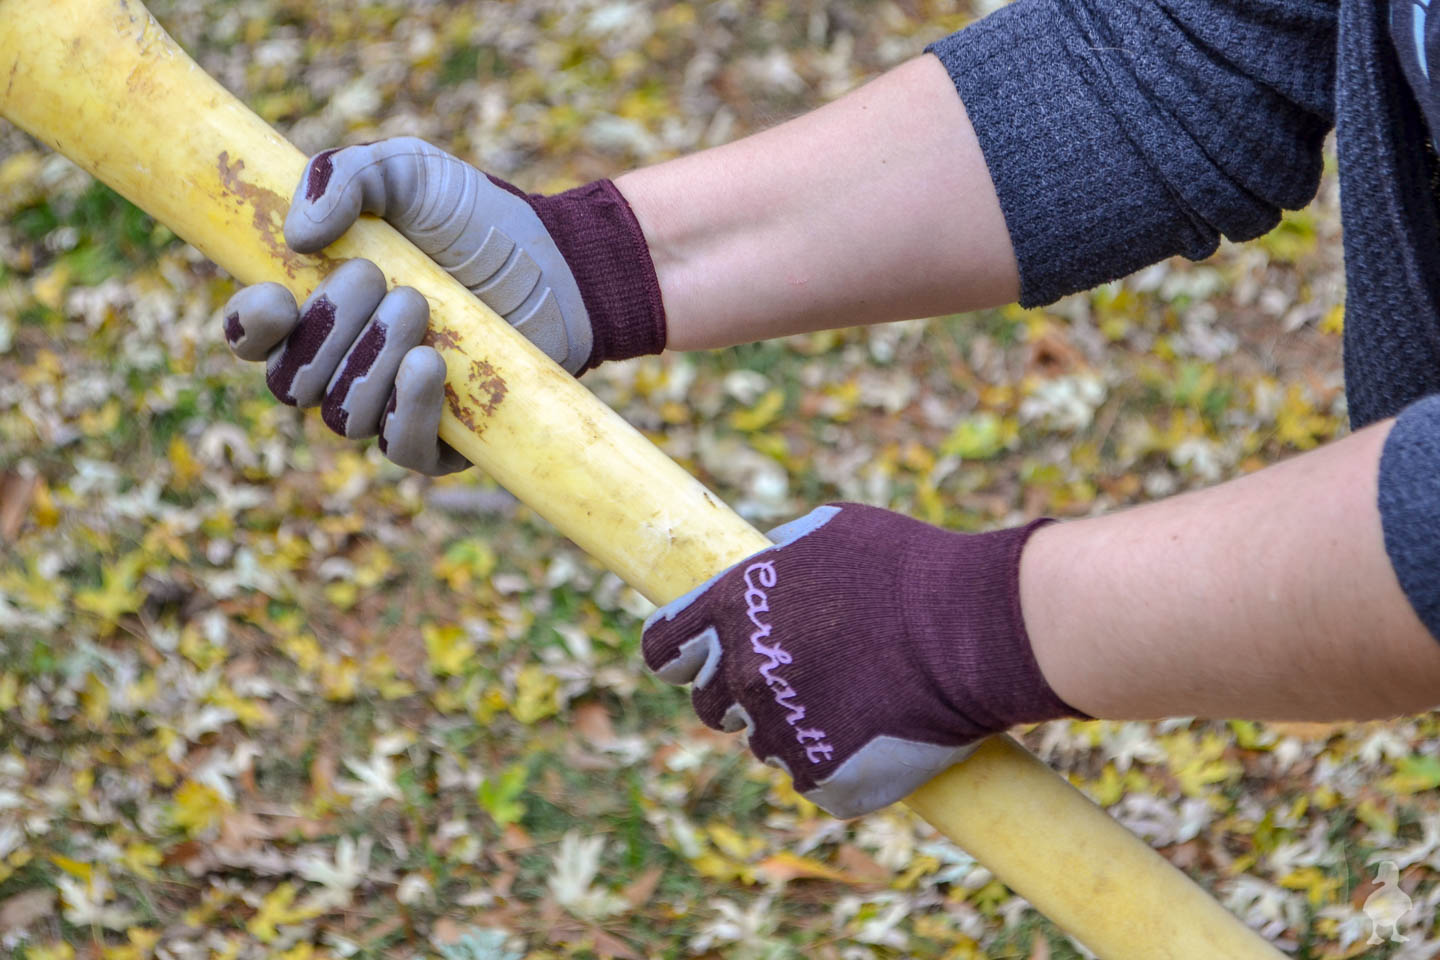 My Search for the Best Work Gloves for Small Hands